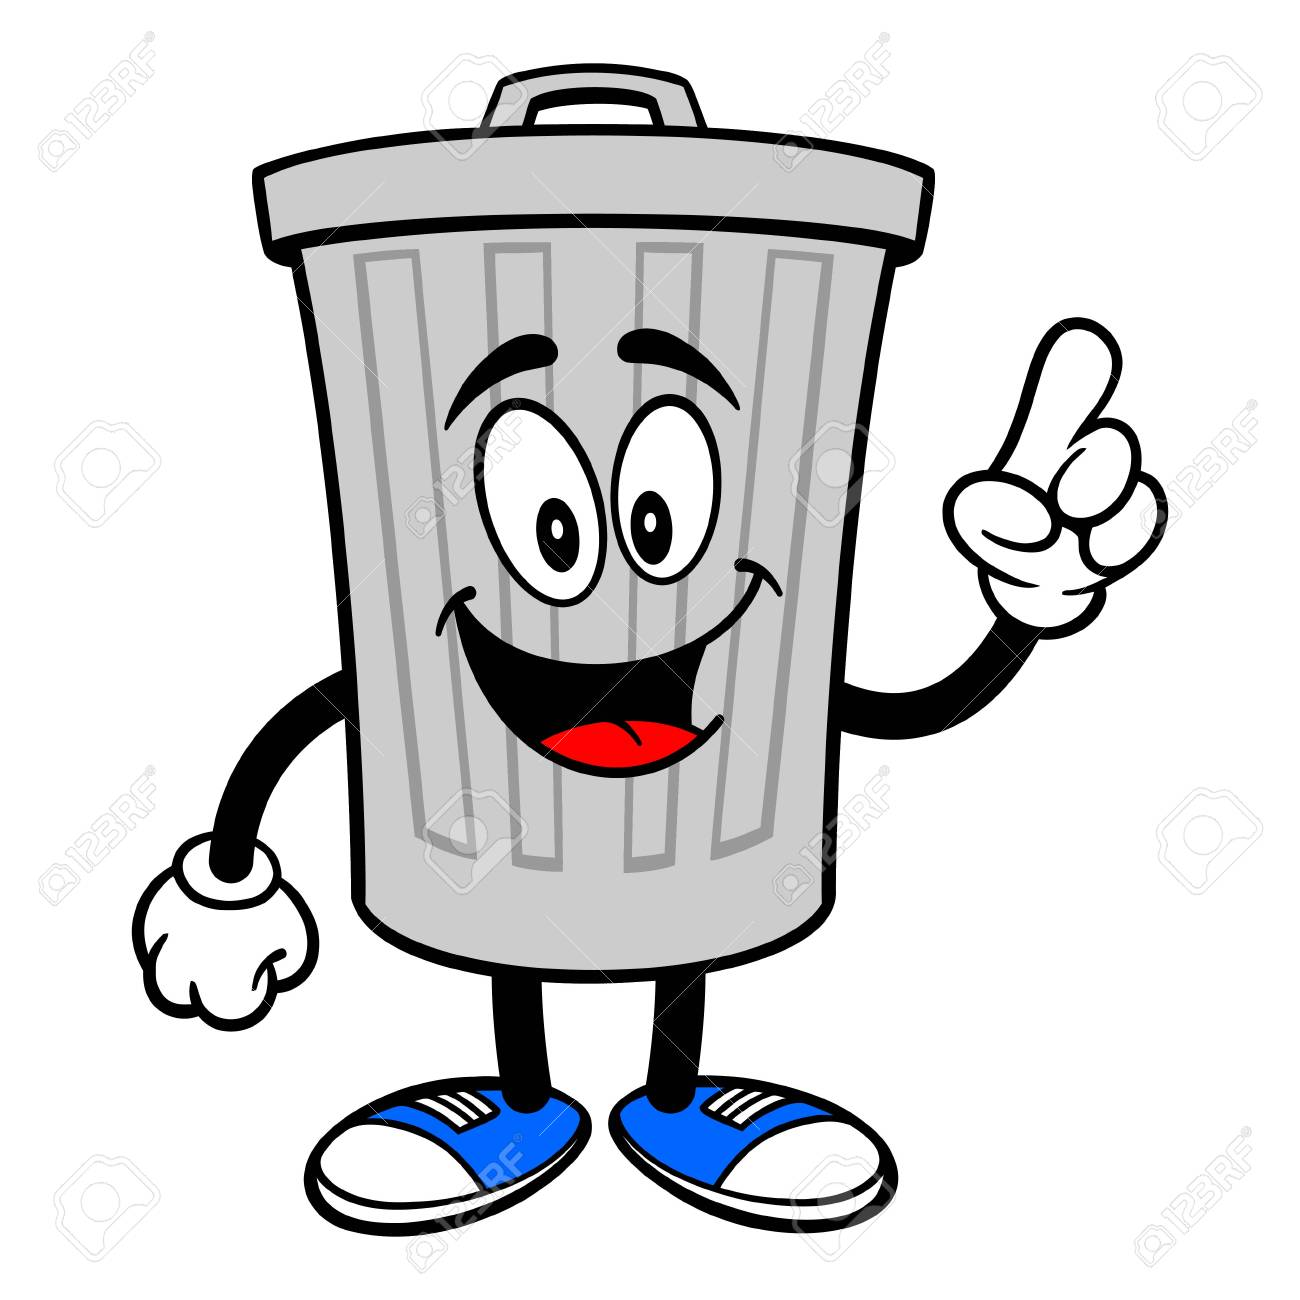 Trash Can Mascot Pointing A Vector Cartoon Illustration Of